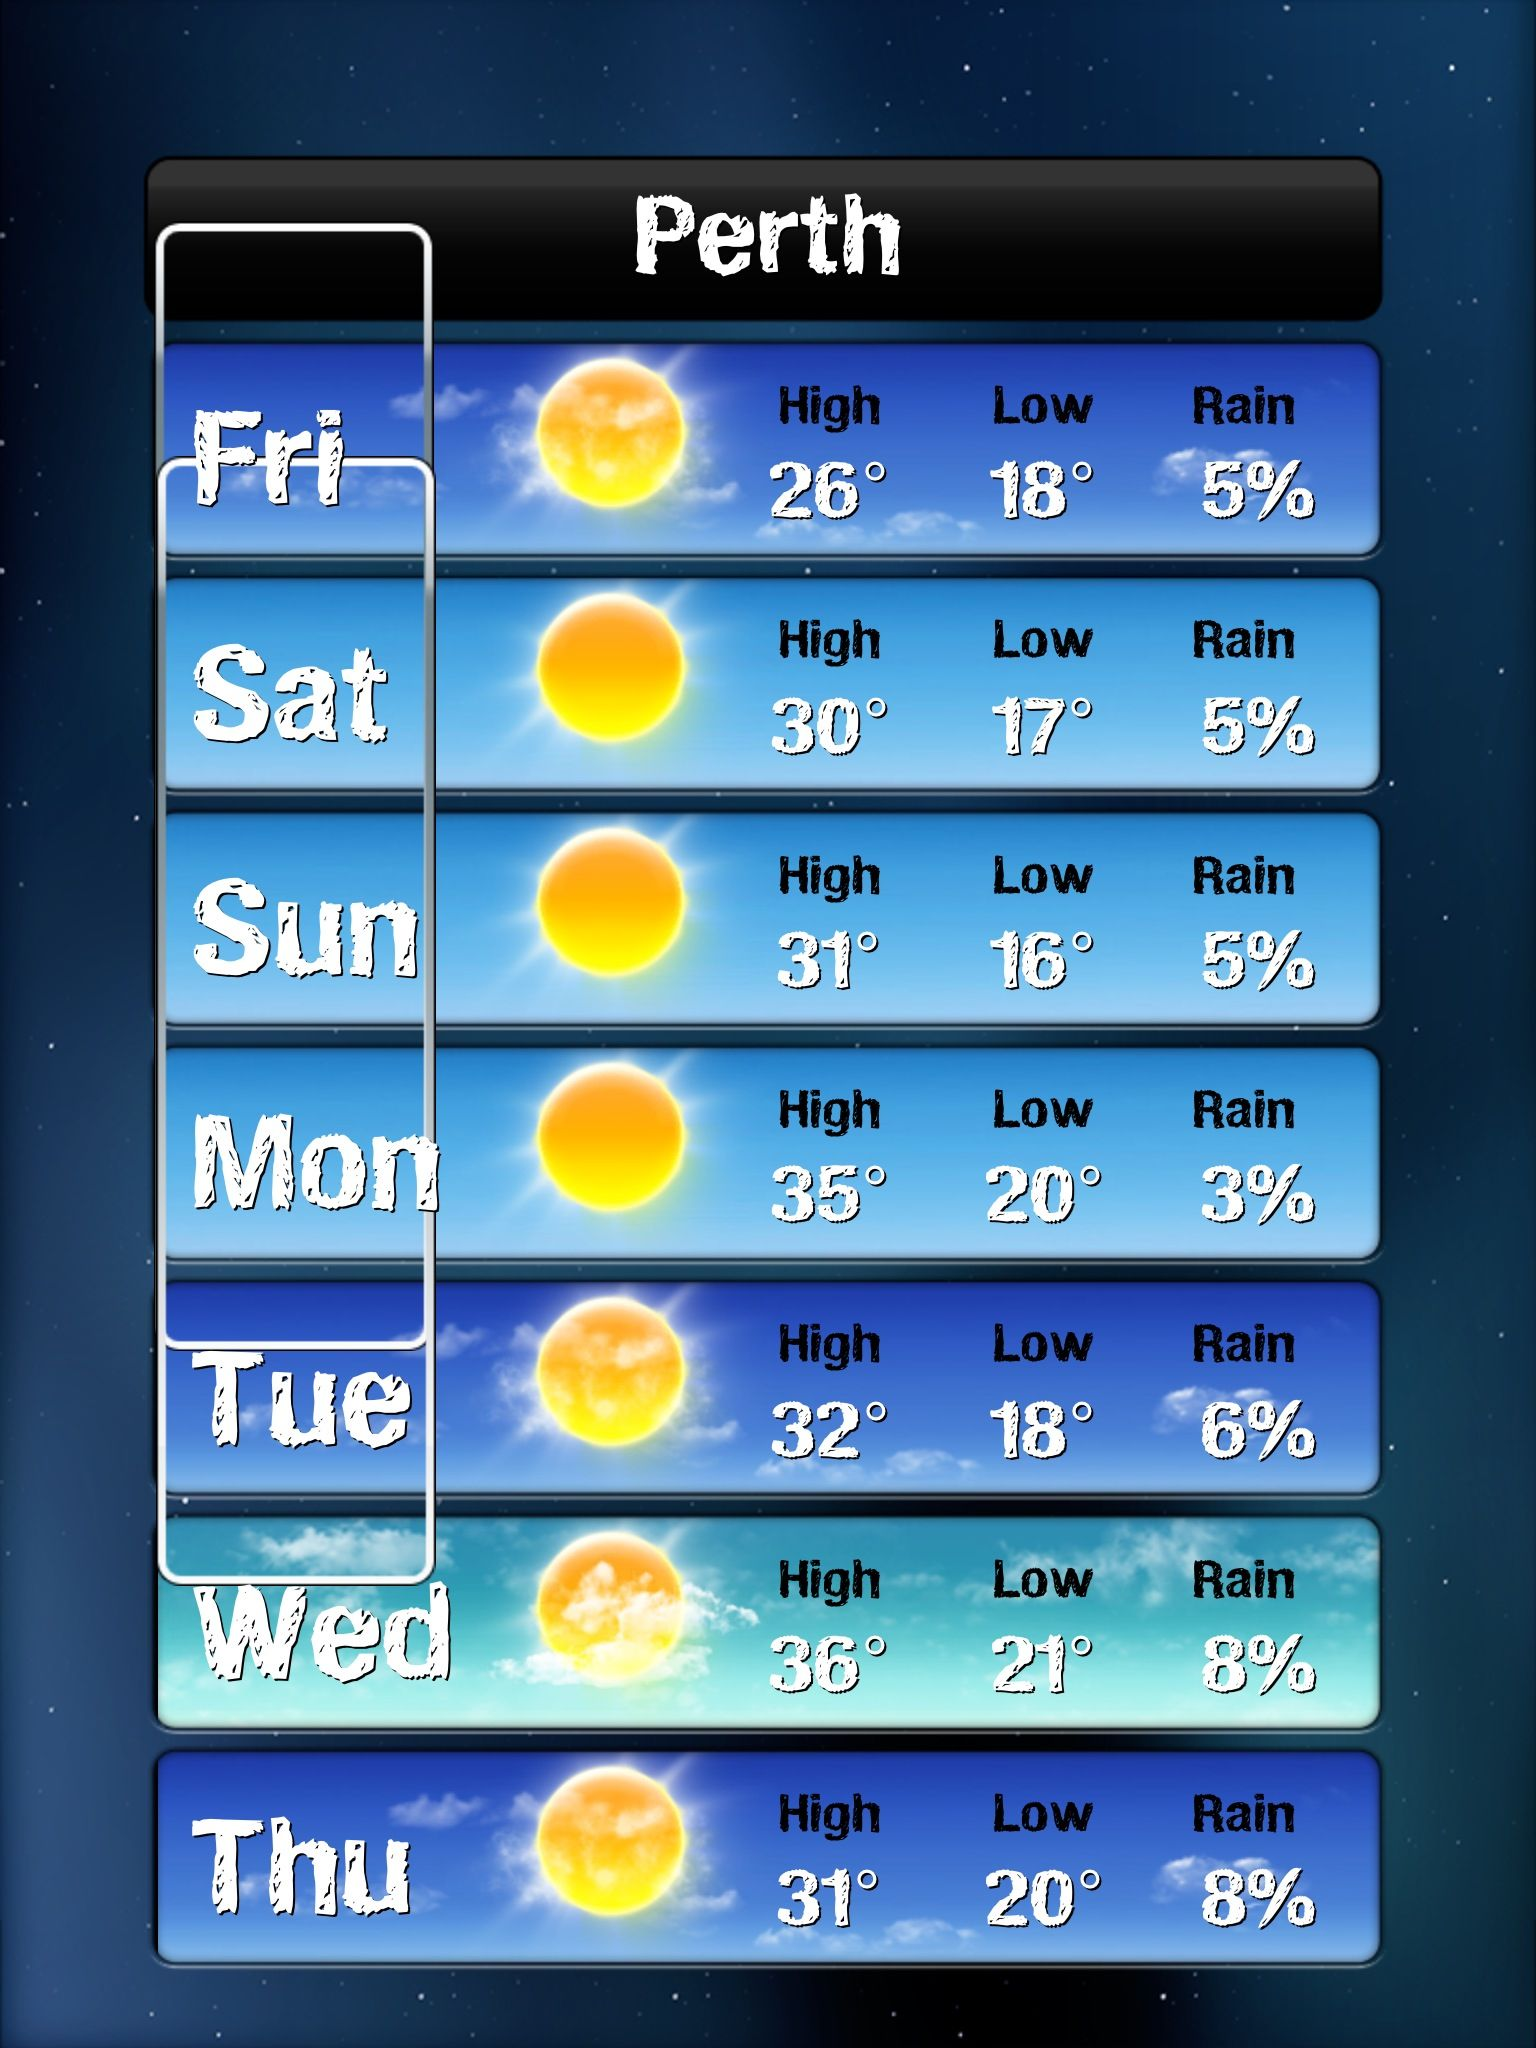 Perth Weather - forecast for the week starting April 5th